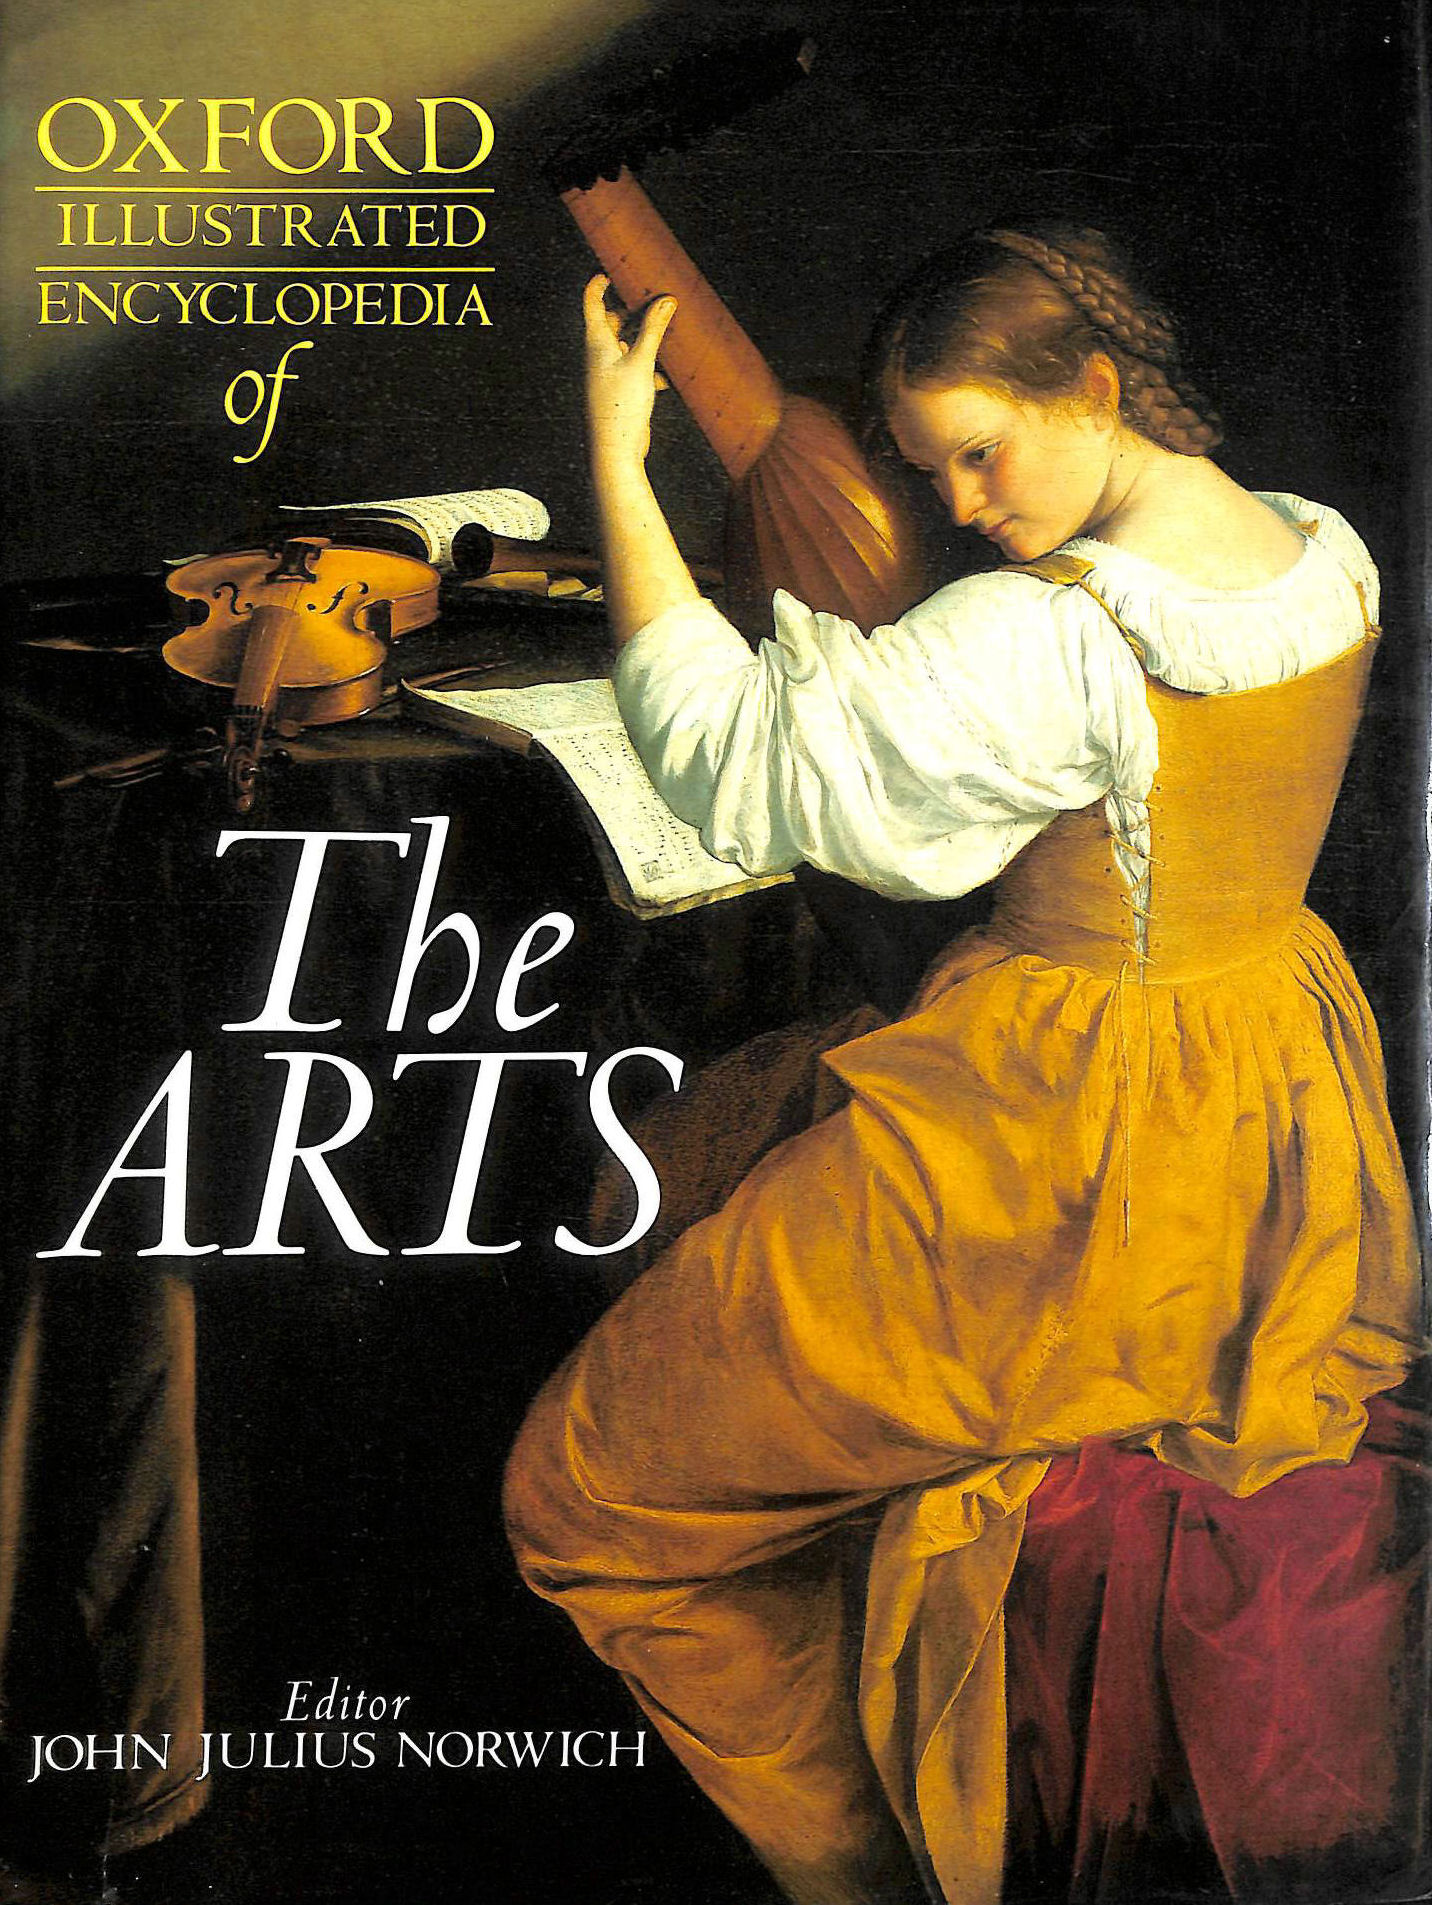 Image for Oxford Illustrated Encyclopedia Vol 5, The Arts.: The Arts v. 5